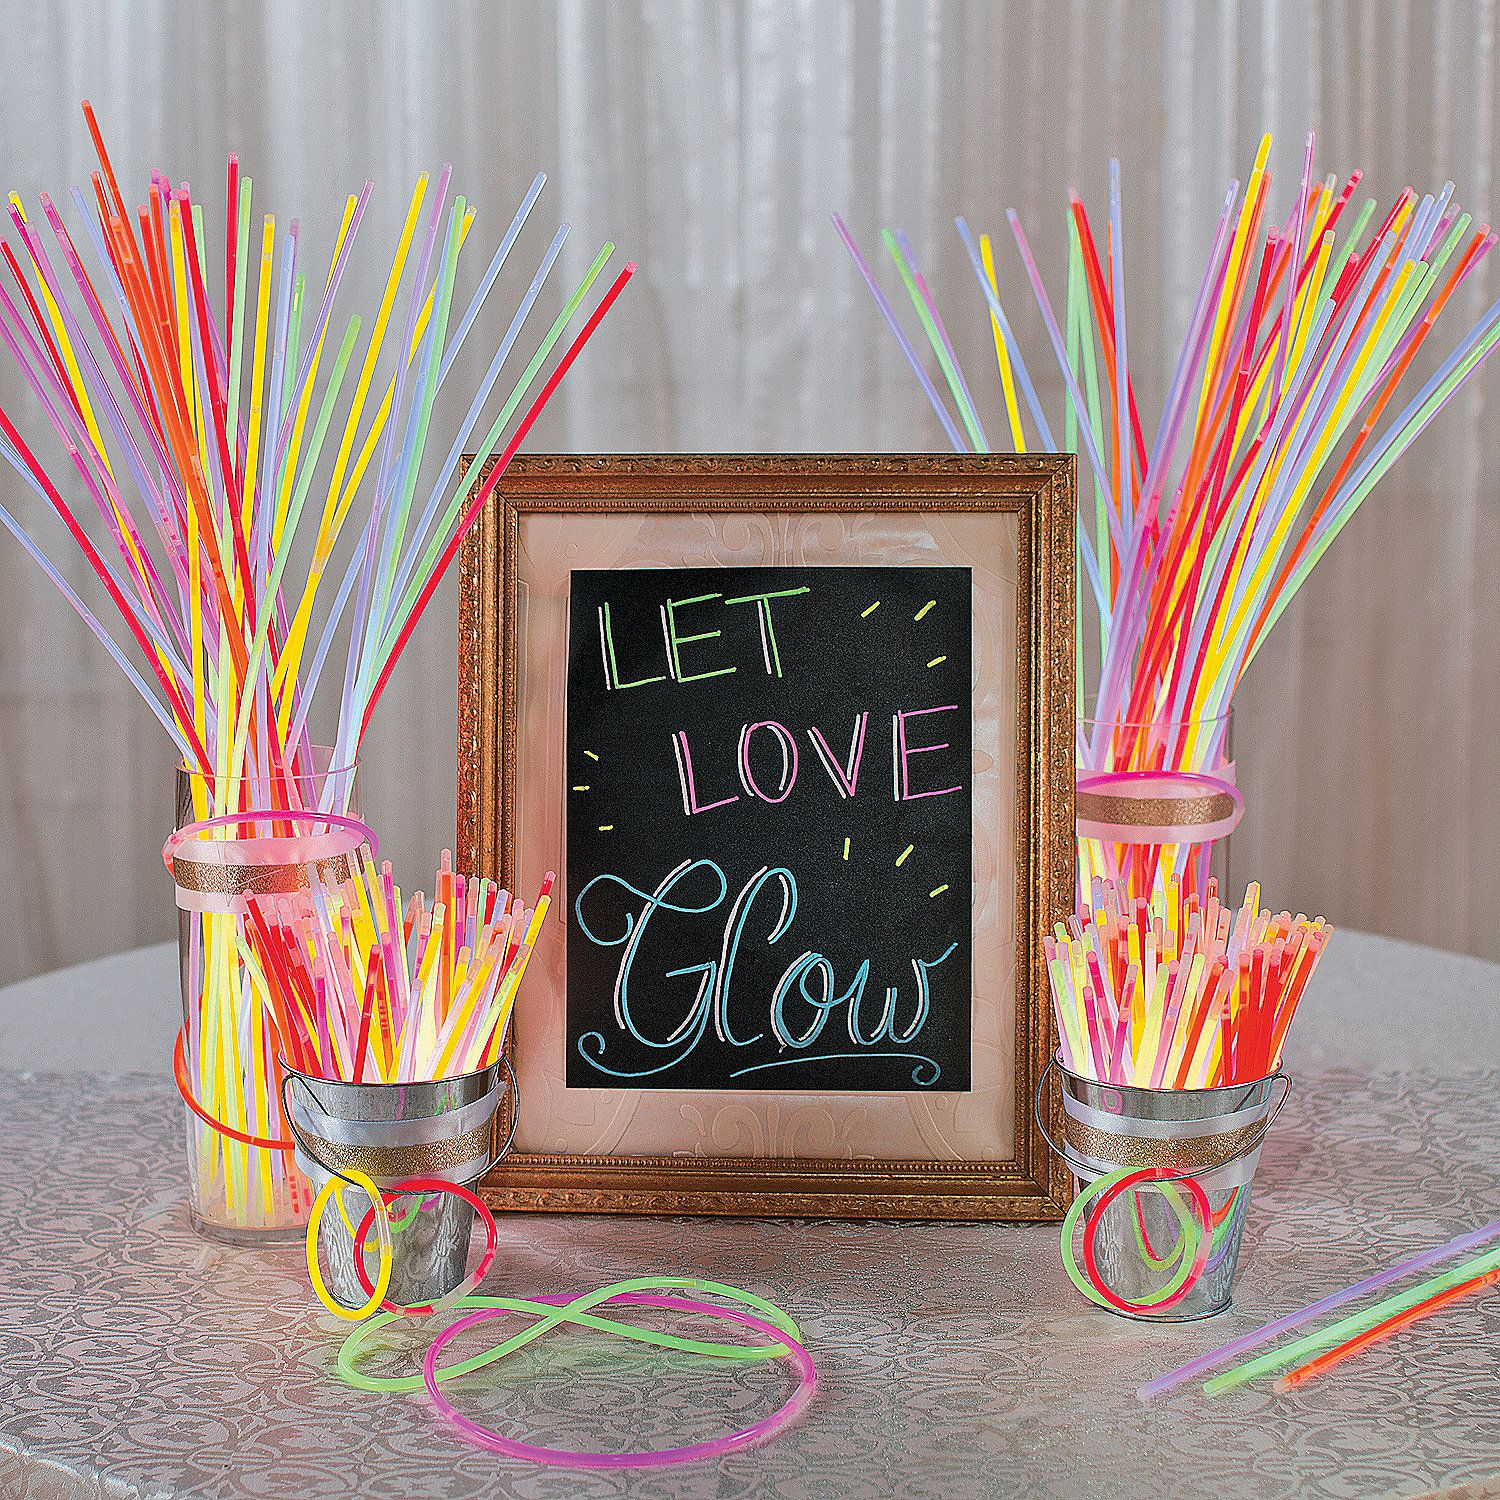 Novel Ideas For Wedding Reception: Let Love Glow Wedding Idea Searching For DIY Wedding Ideas